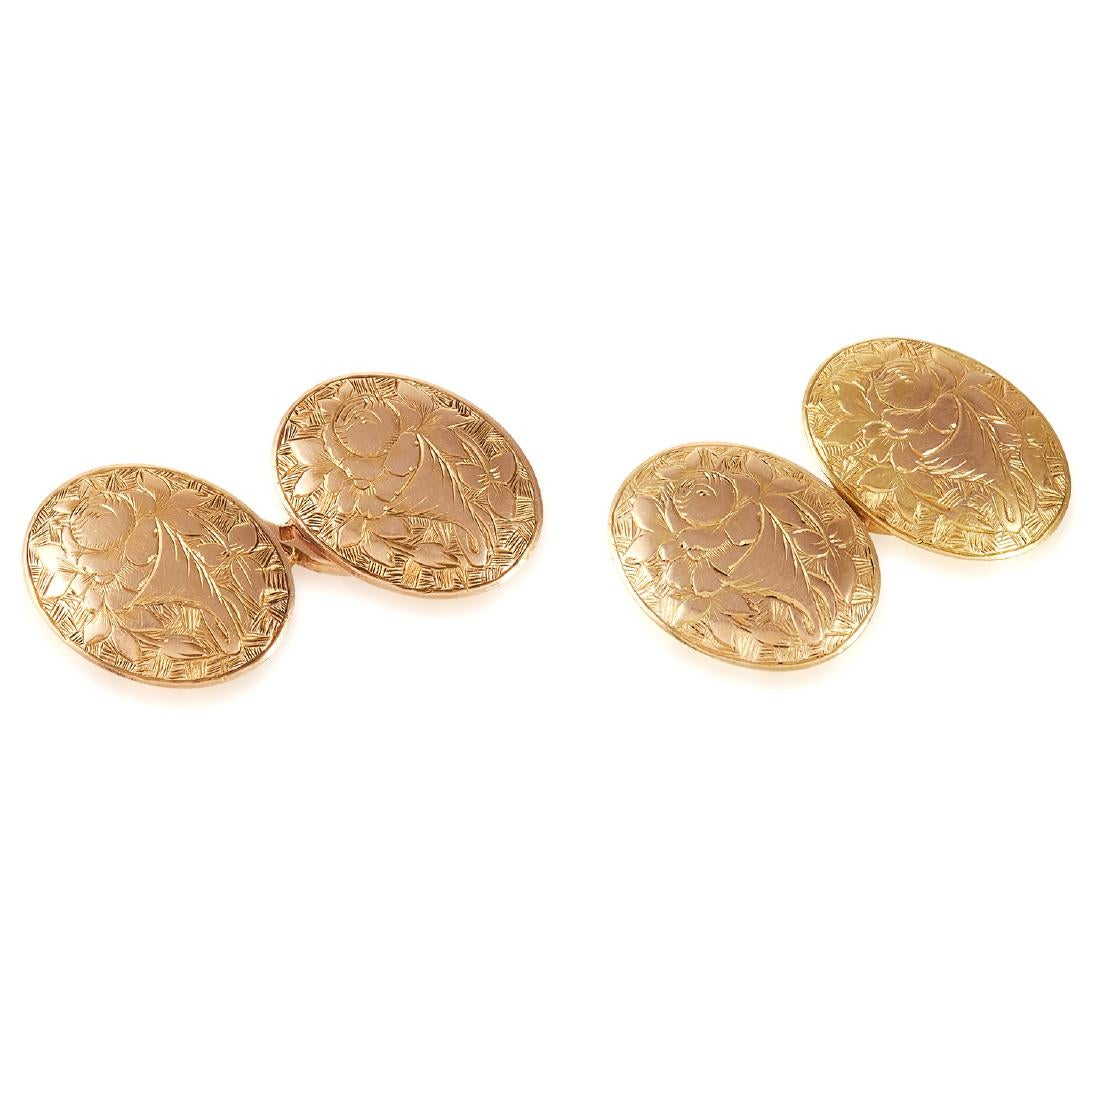 Los 22 - A PAIR OF ANTIQUE CUFFLINKS the oval faces decorated in floral engraved designs, 7.1g.